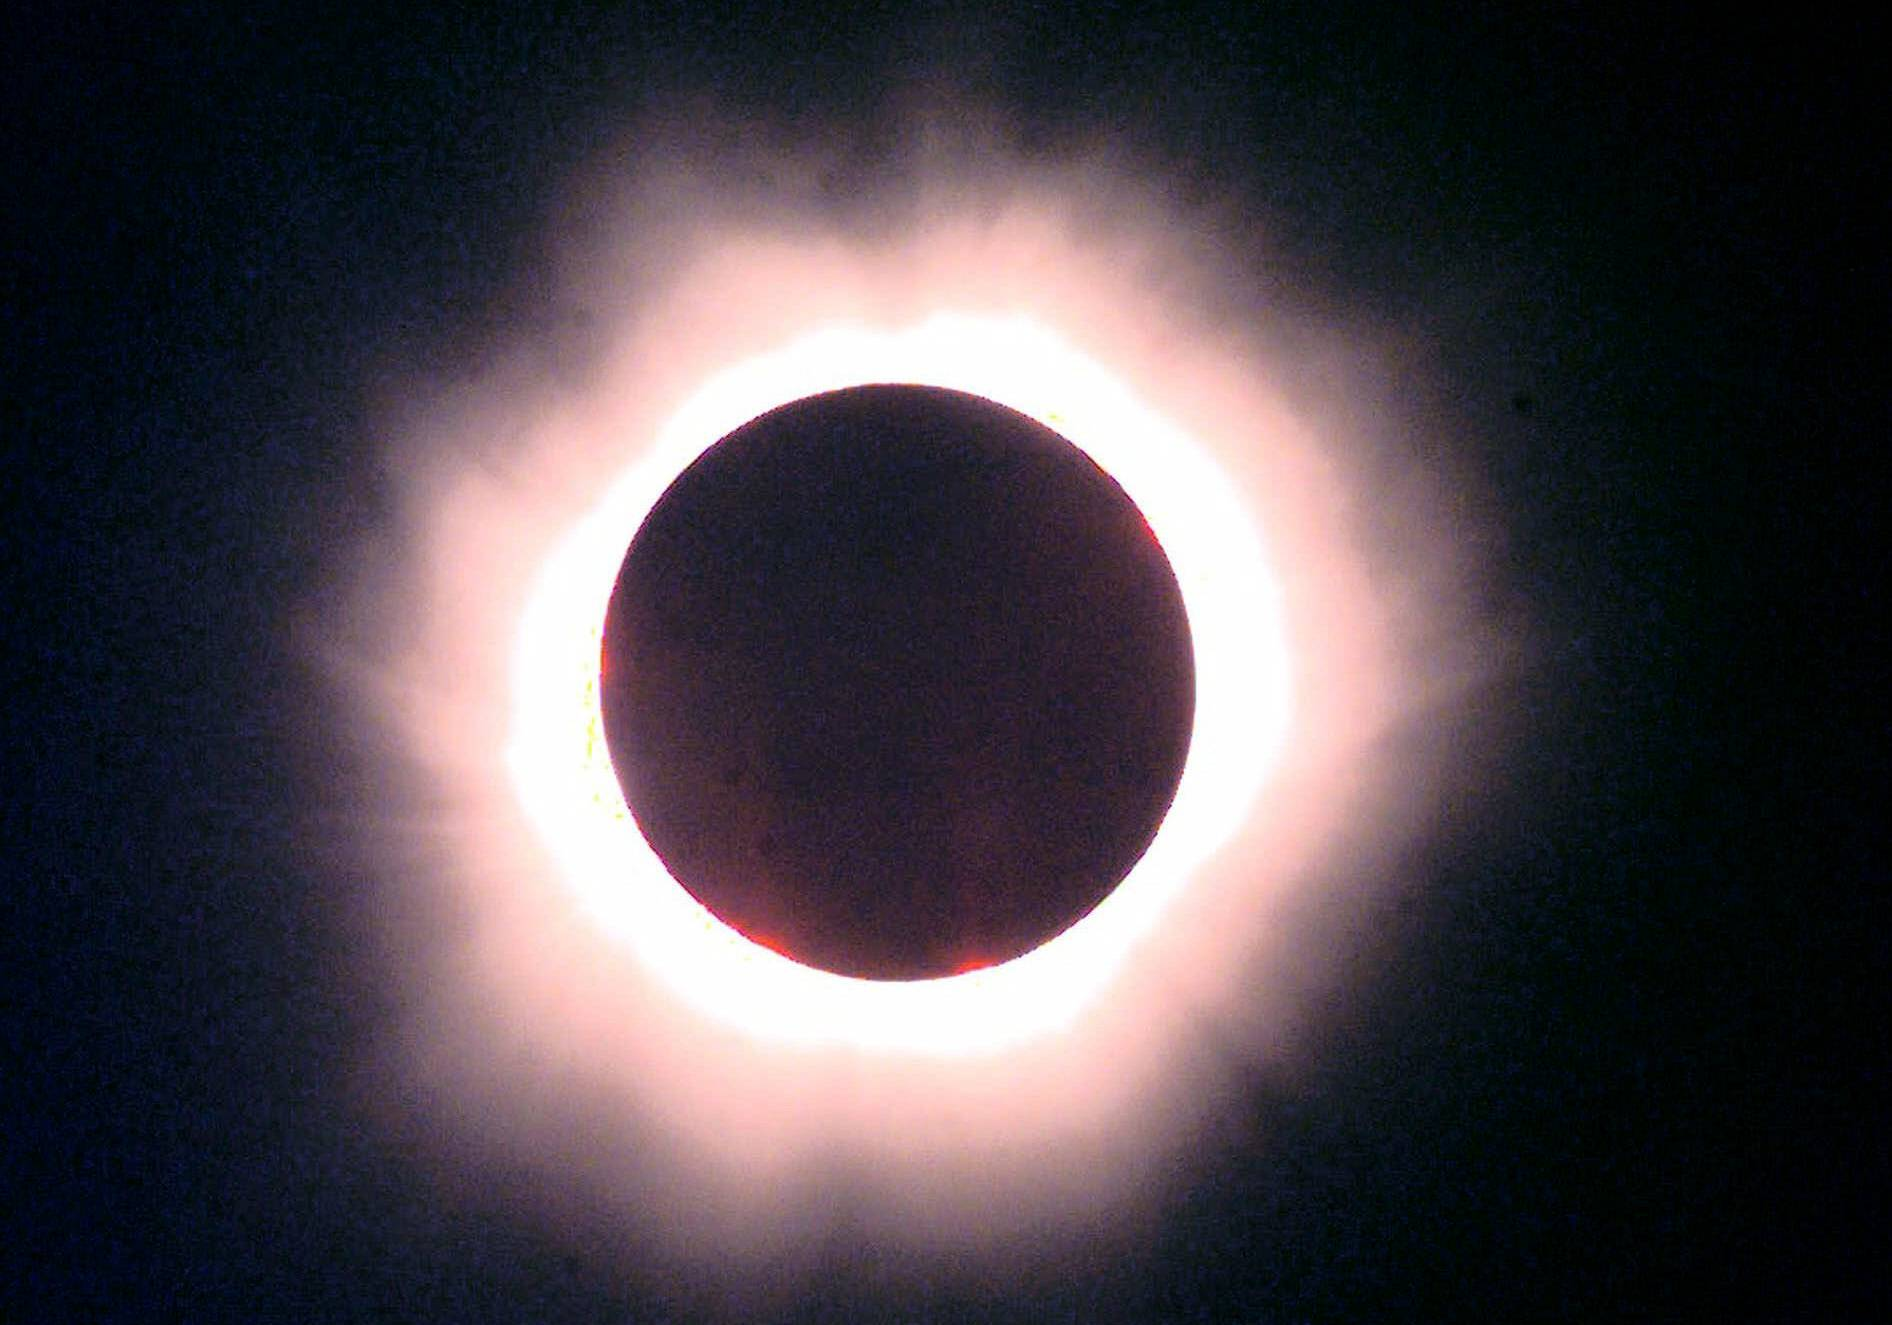 This total solar eclipse took place above Saint Pierre du Port near Normandy, France, in 1999.